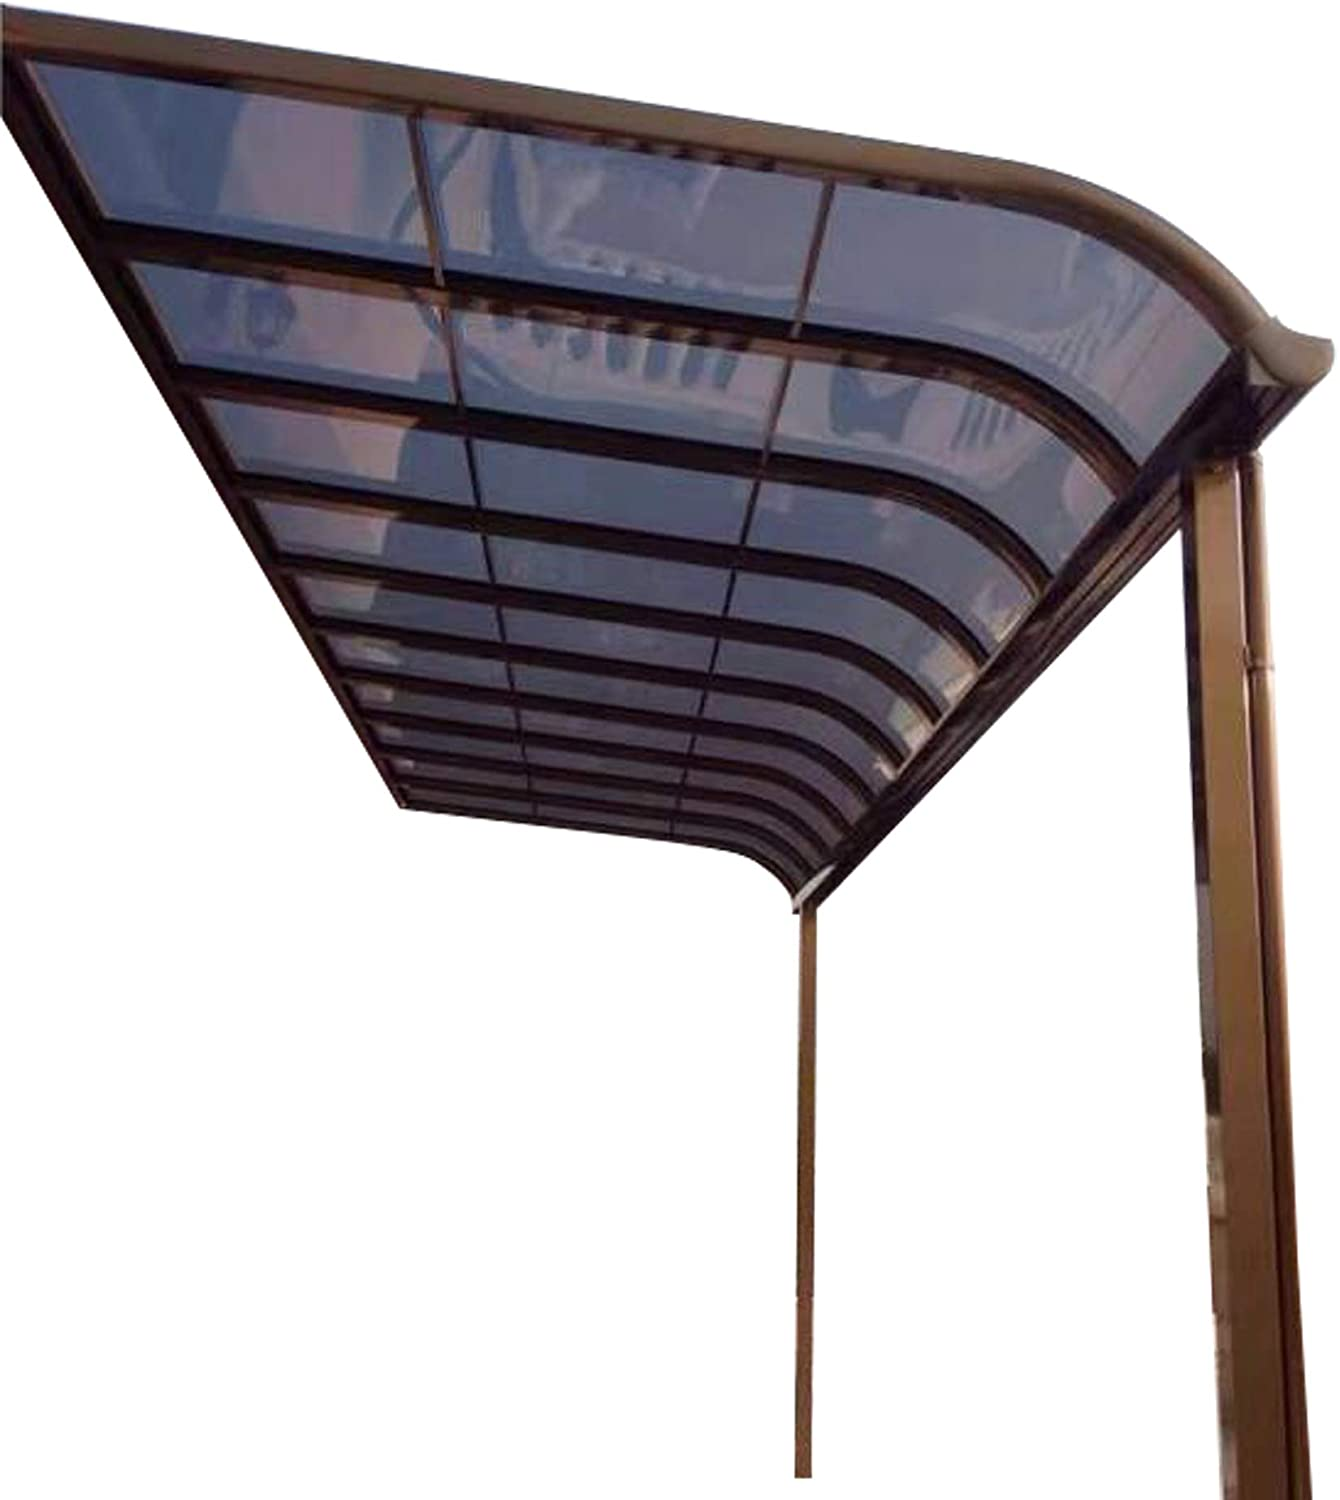 Litesort Aluminum Patio Awnings Deck Roof Backyard Cover Front Door Awnings and Also Can Be Gazebo Awning 10×15 Feet Made by Aluminum Frame and Polycarbonate Roofing